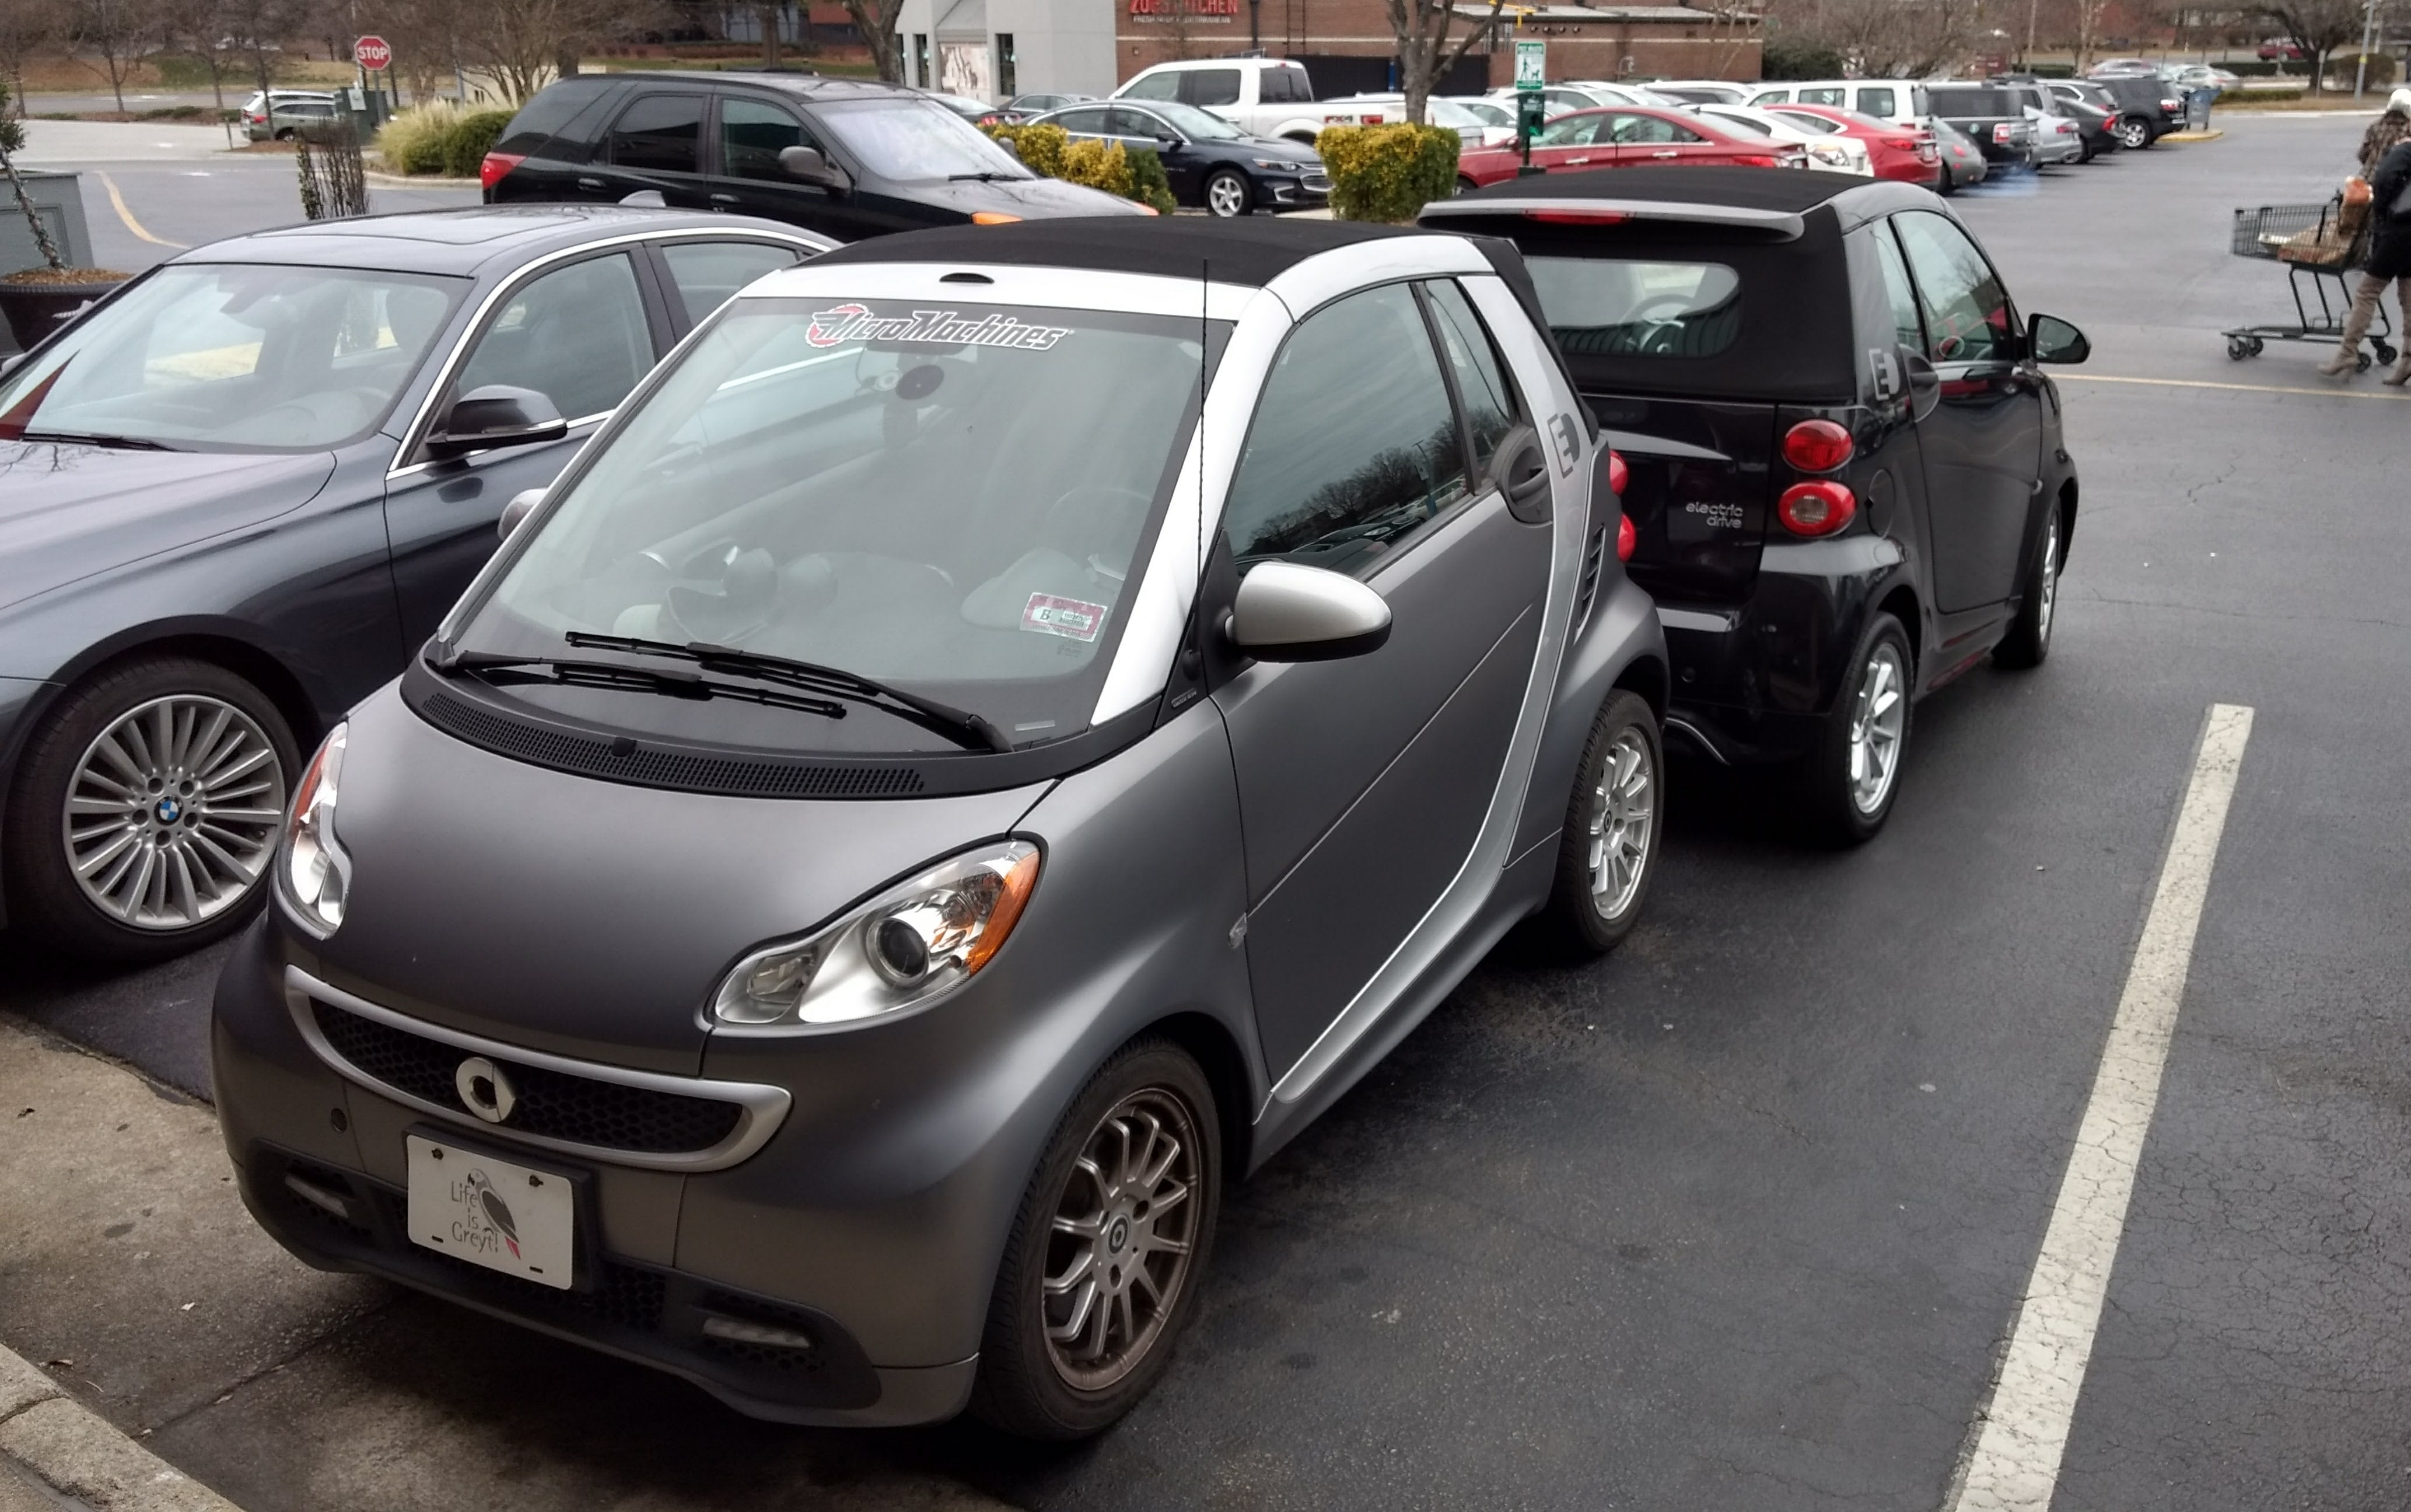 Smart cars are easy to park